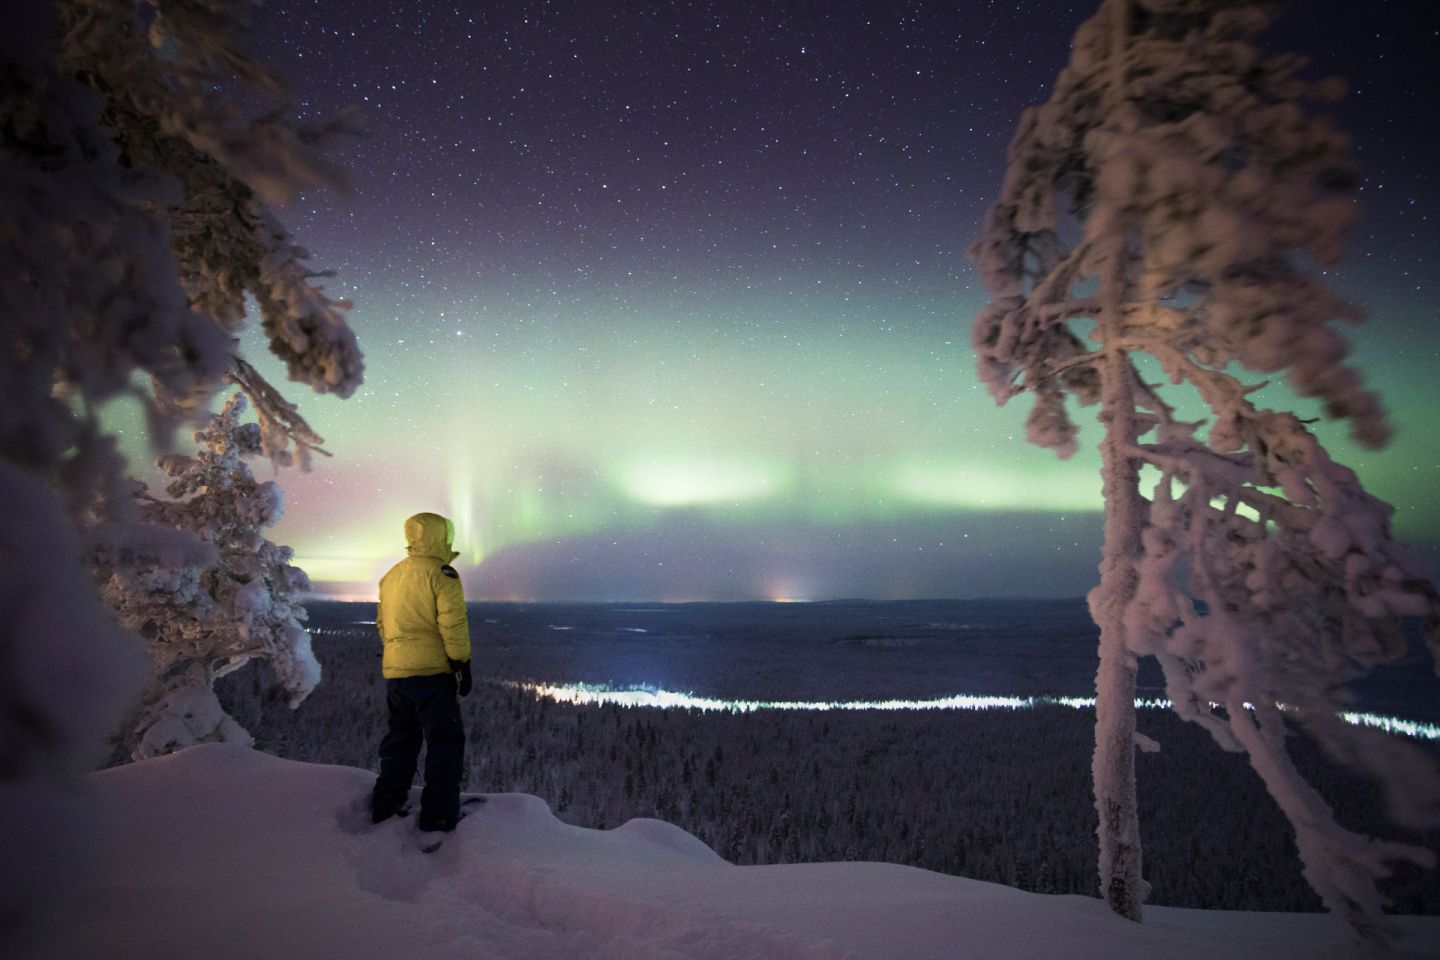 Watching the Northern Lights and #darkskies above Pyhä-Luosto, just one of the reasons to visit Lapland in the winter